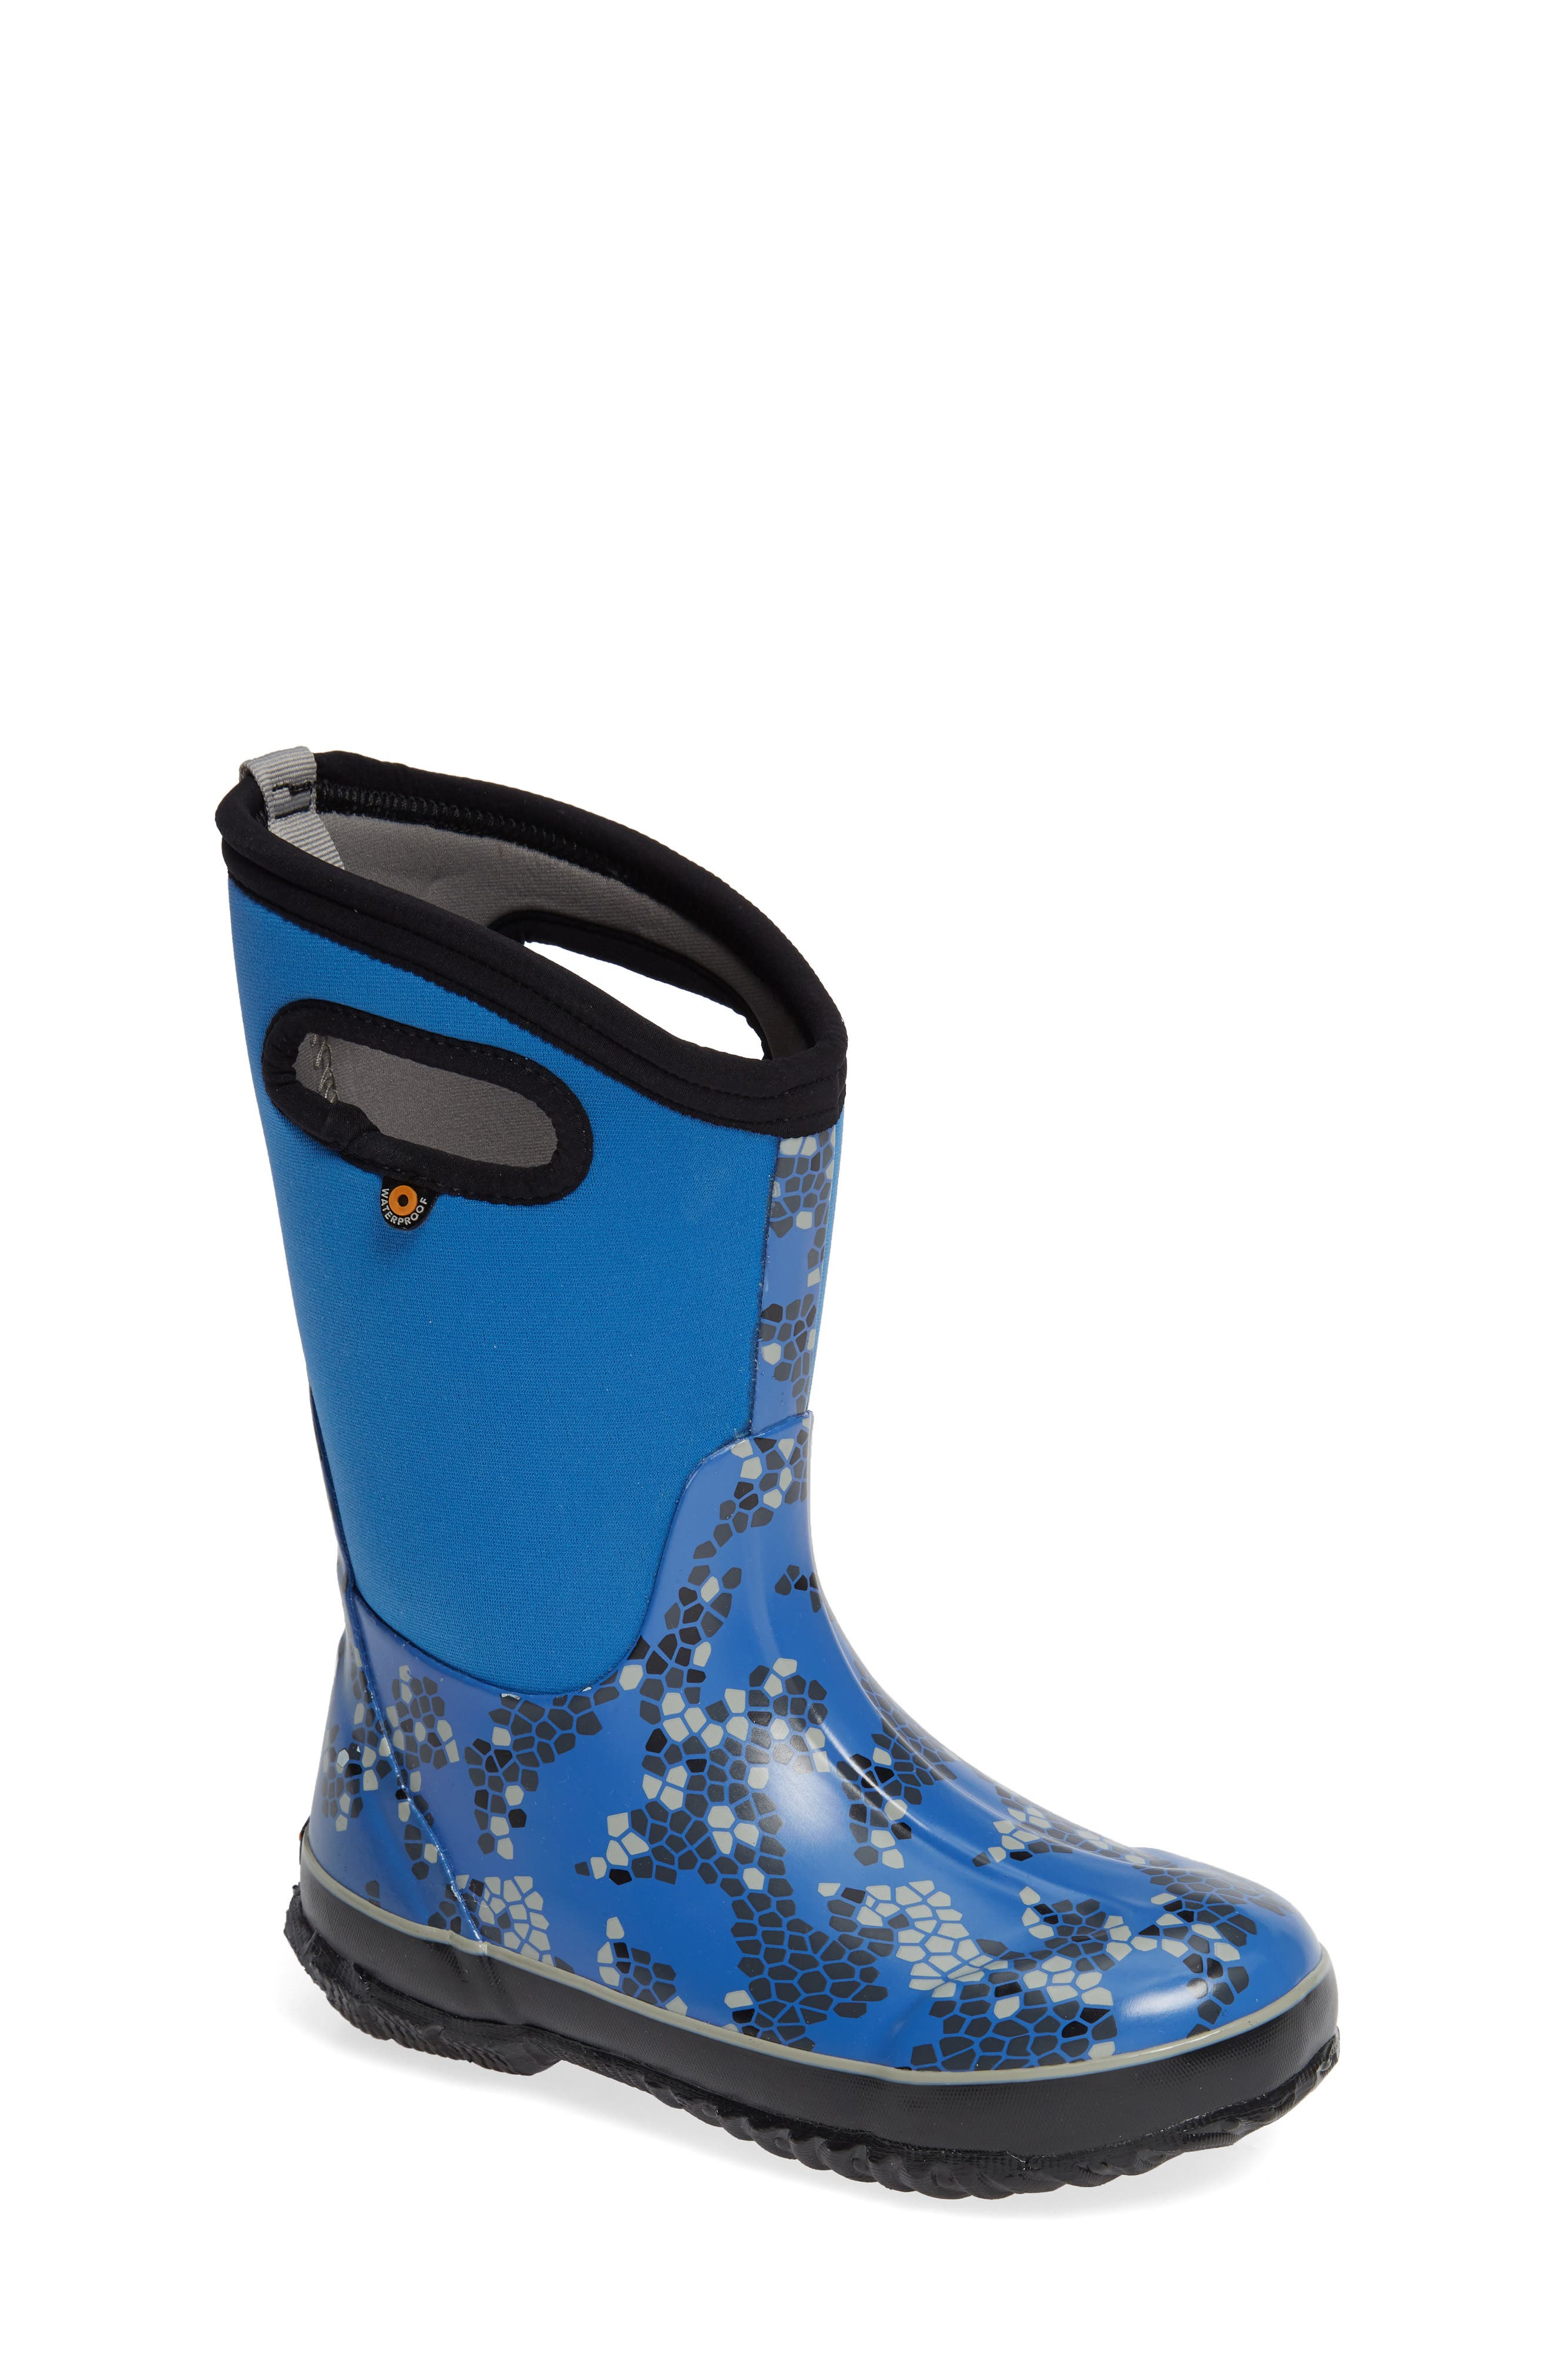 BOGS, Classic Axel Insulated Waterproof Boot, Main thumbnail 1, color, 460